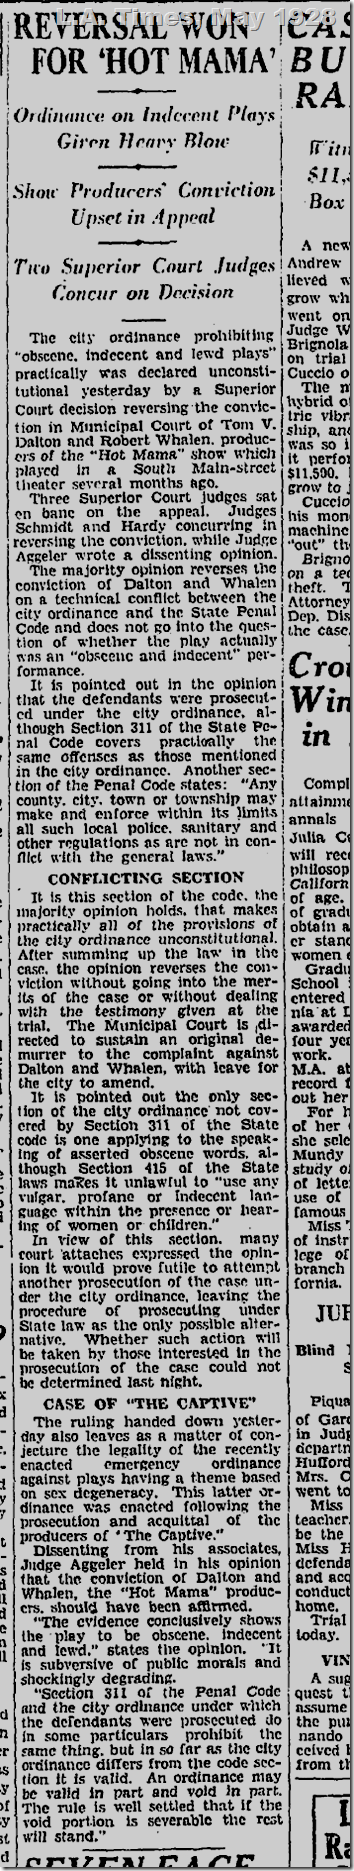 L.A. Times, May 1928